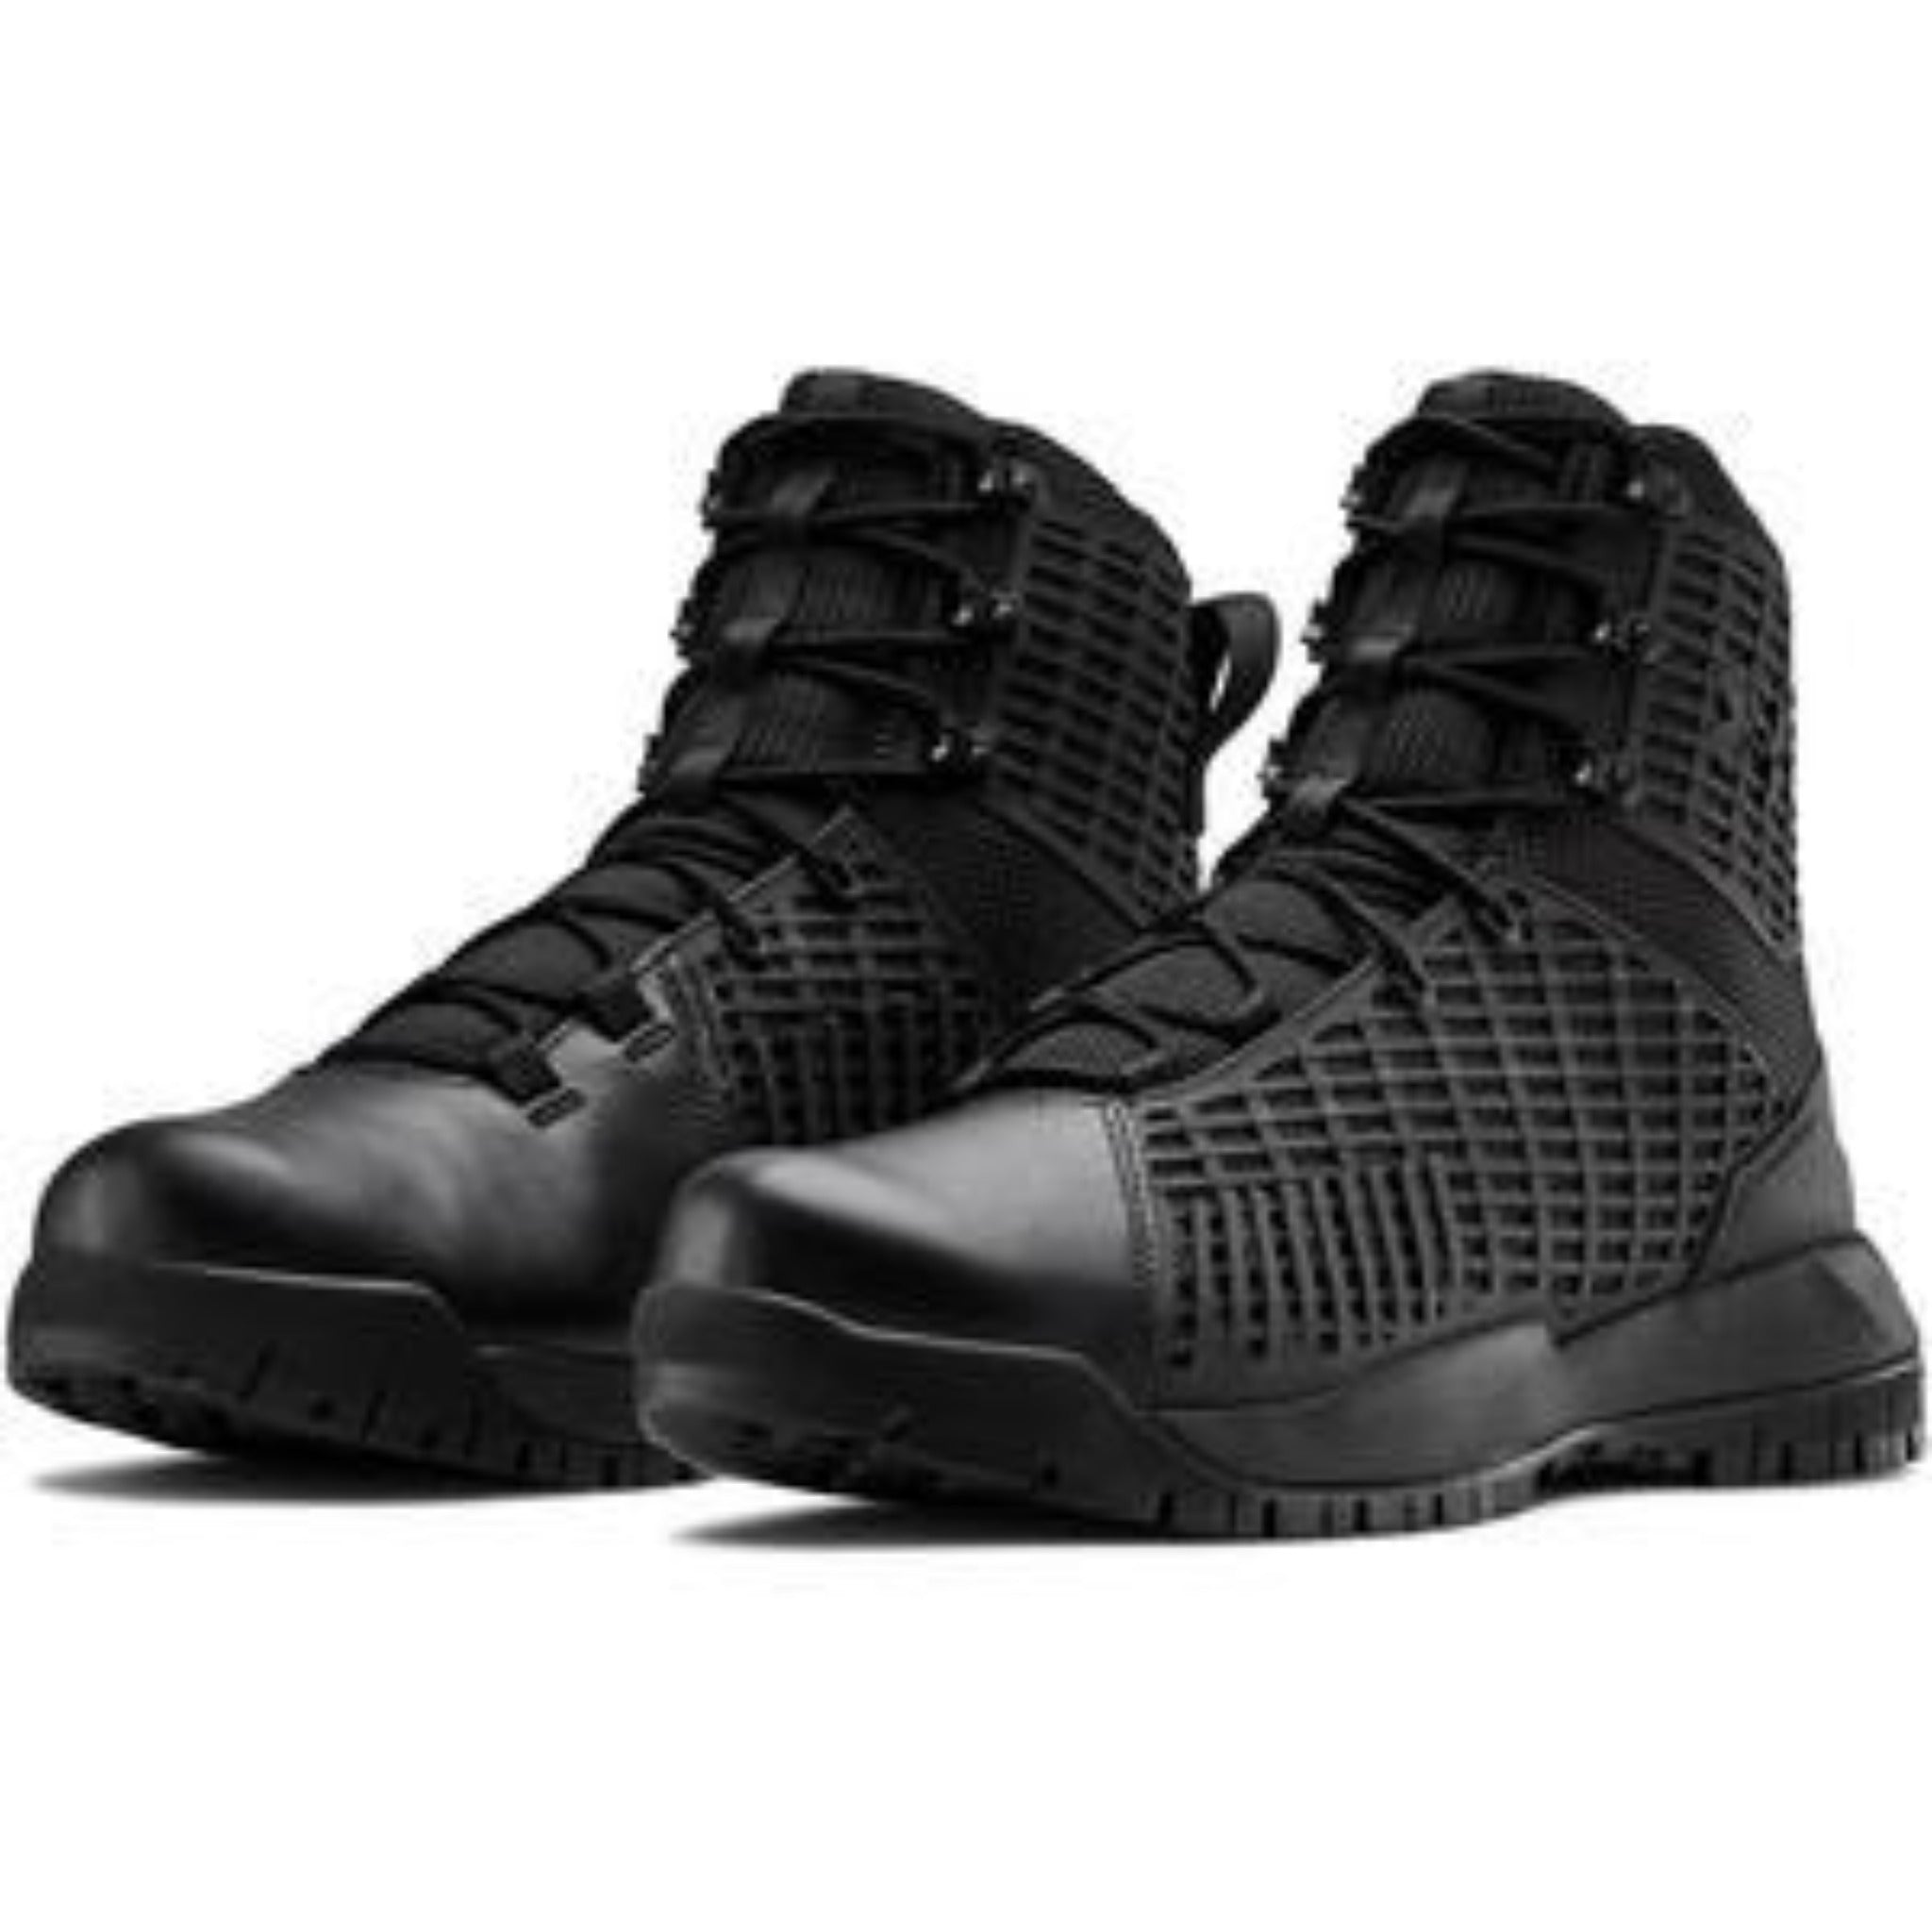 Stryker Tactical Boots